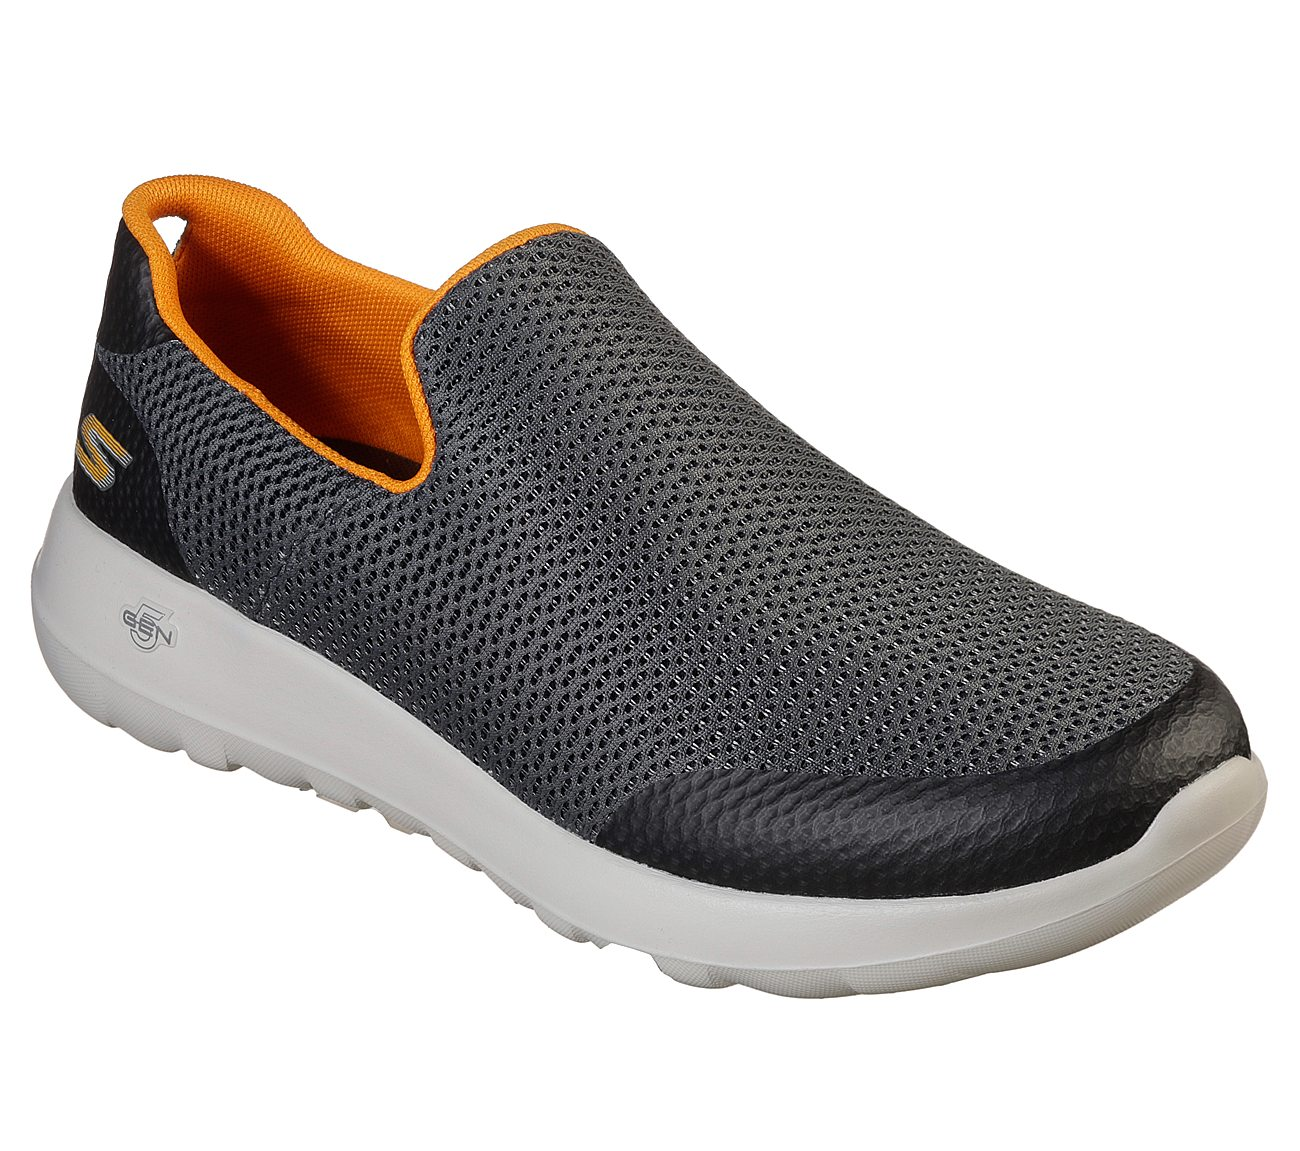 Skechers GOwalk Max Focal